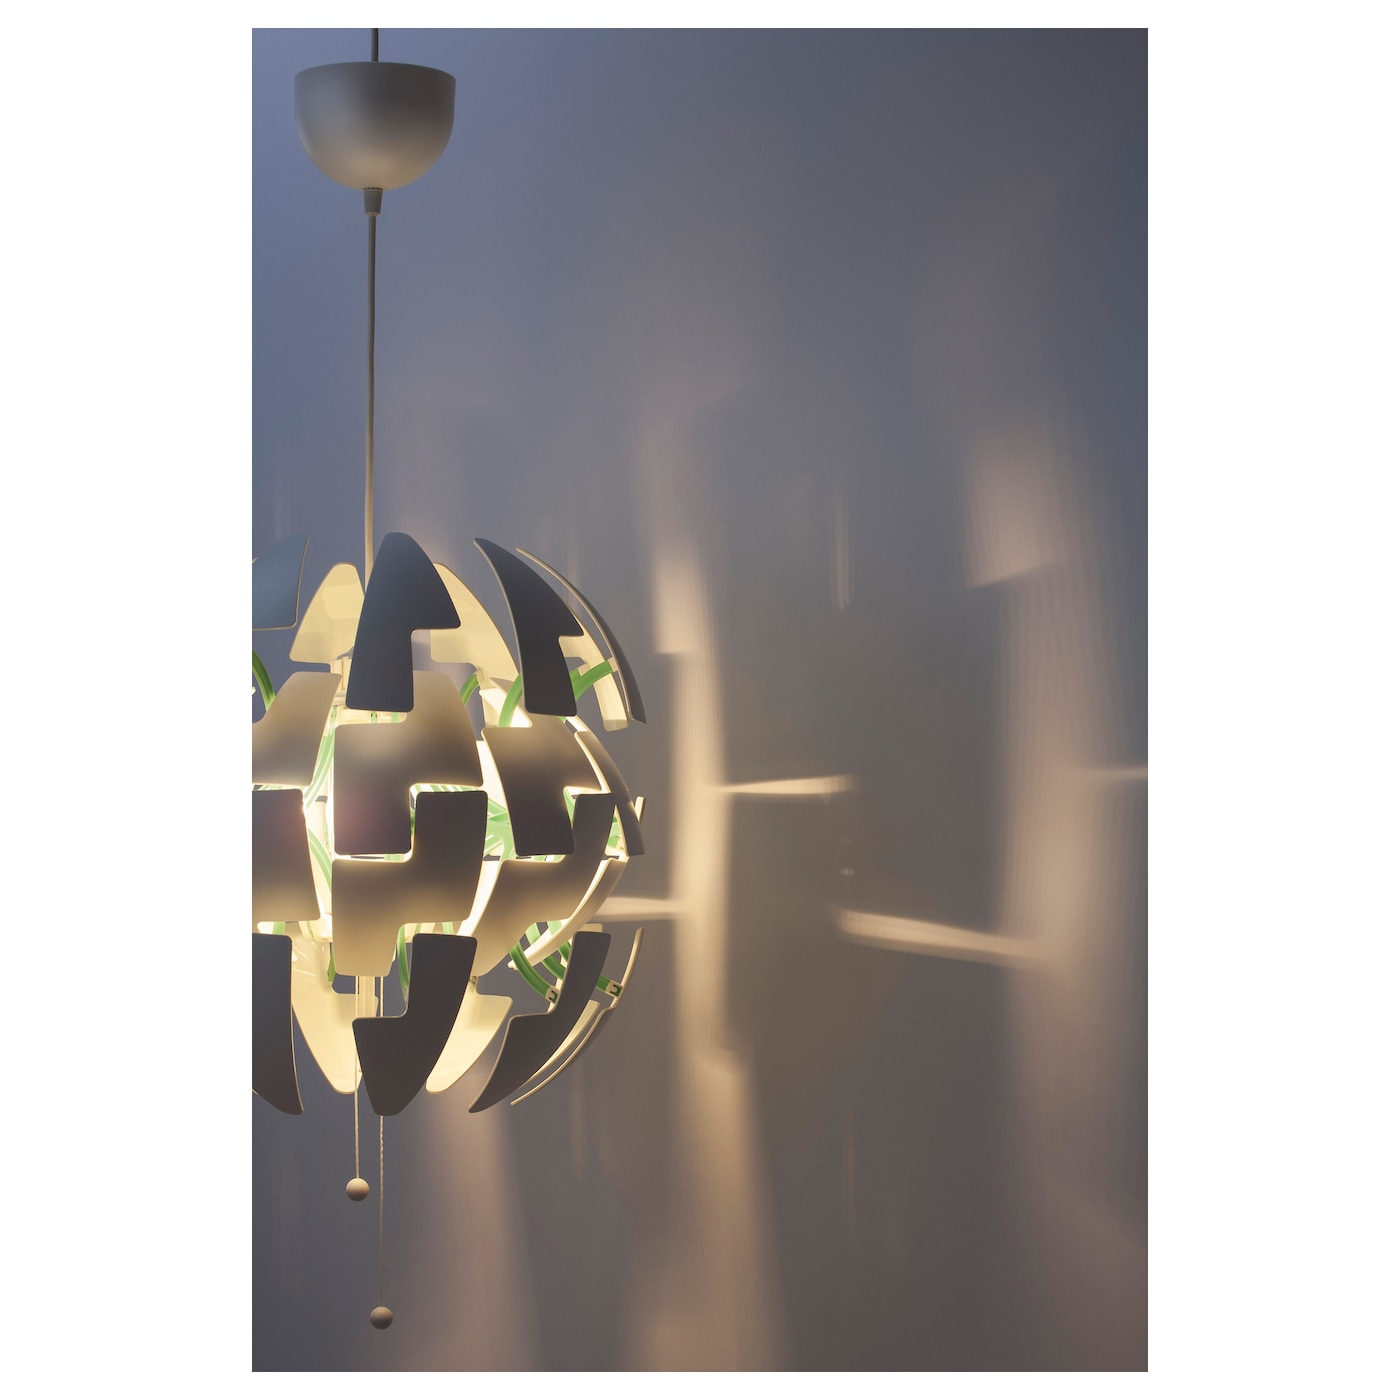 Lampe Suspension Ikea Amazing Beau Lustre Lampe Suspension Ikea  # Enfilade Ikea